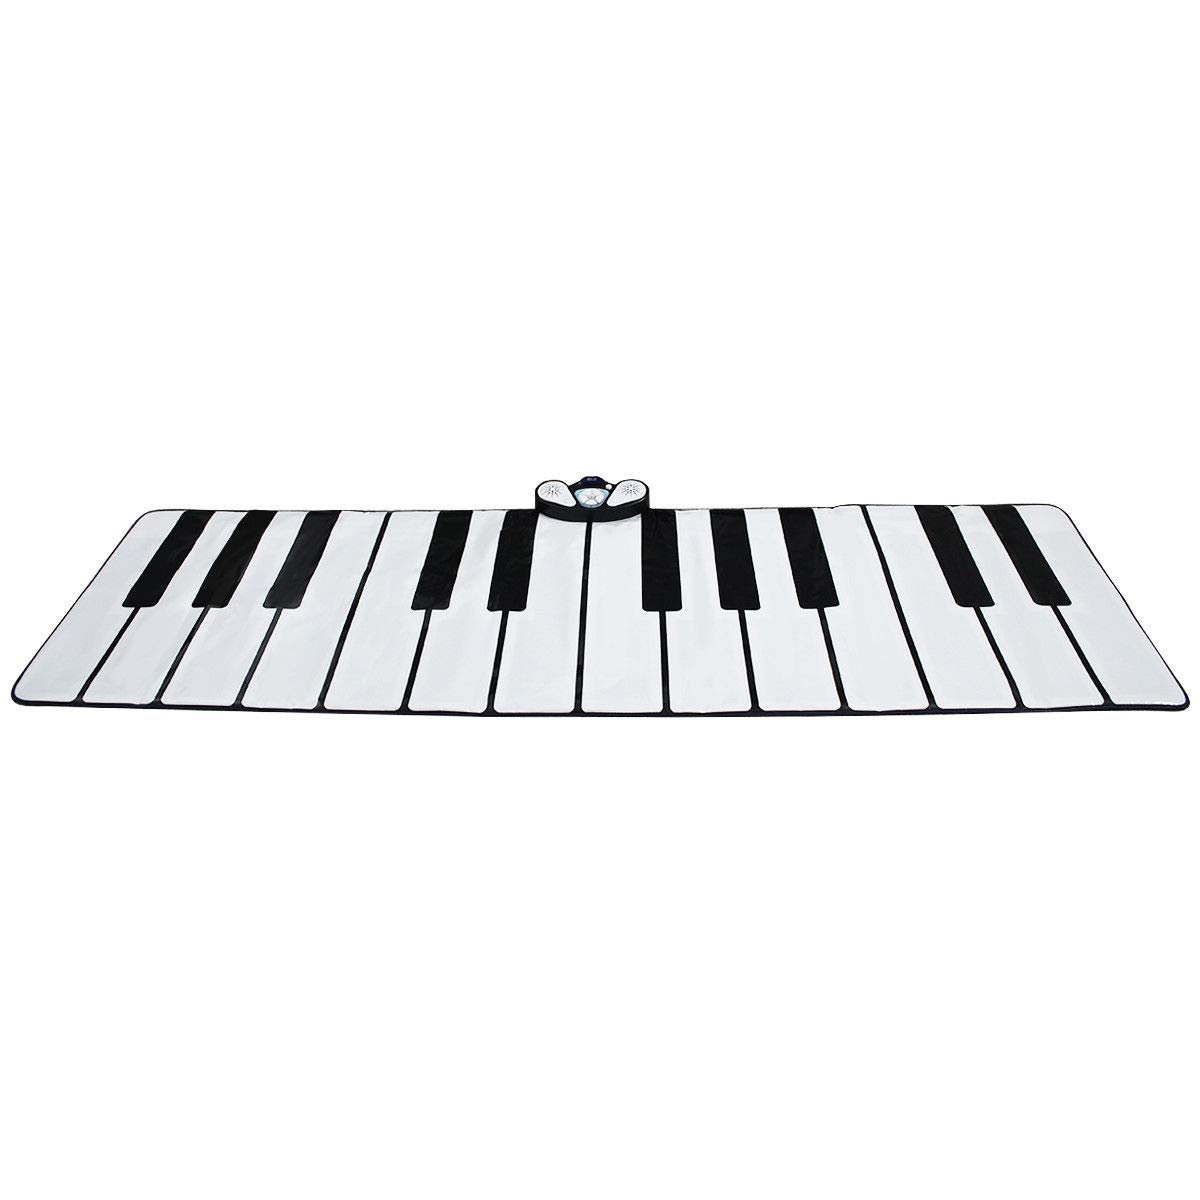 FDInspiration 24-Key Kids Keyboard Dance Gigantic Piano Playmat w/ Cable with Ebook by FDInspiration (Image #7)